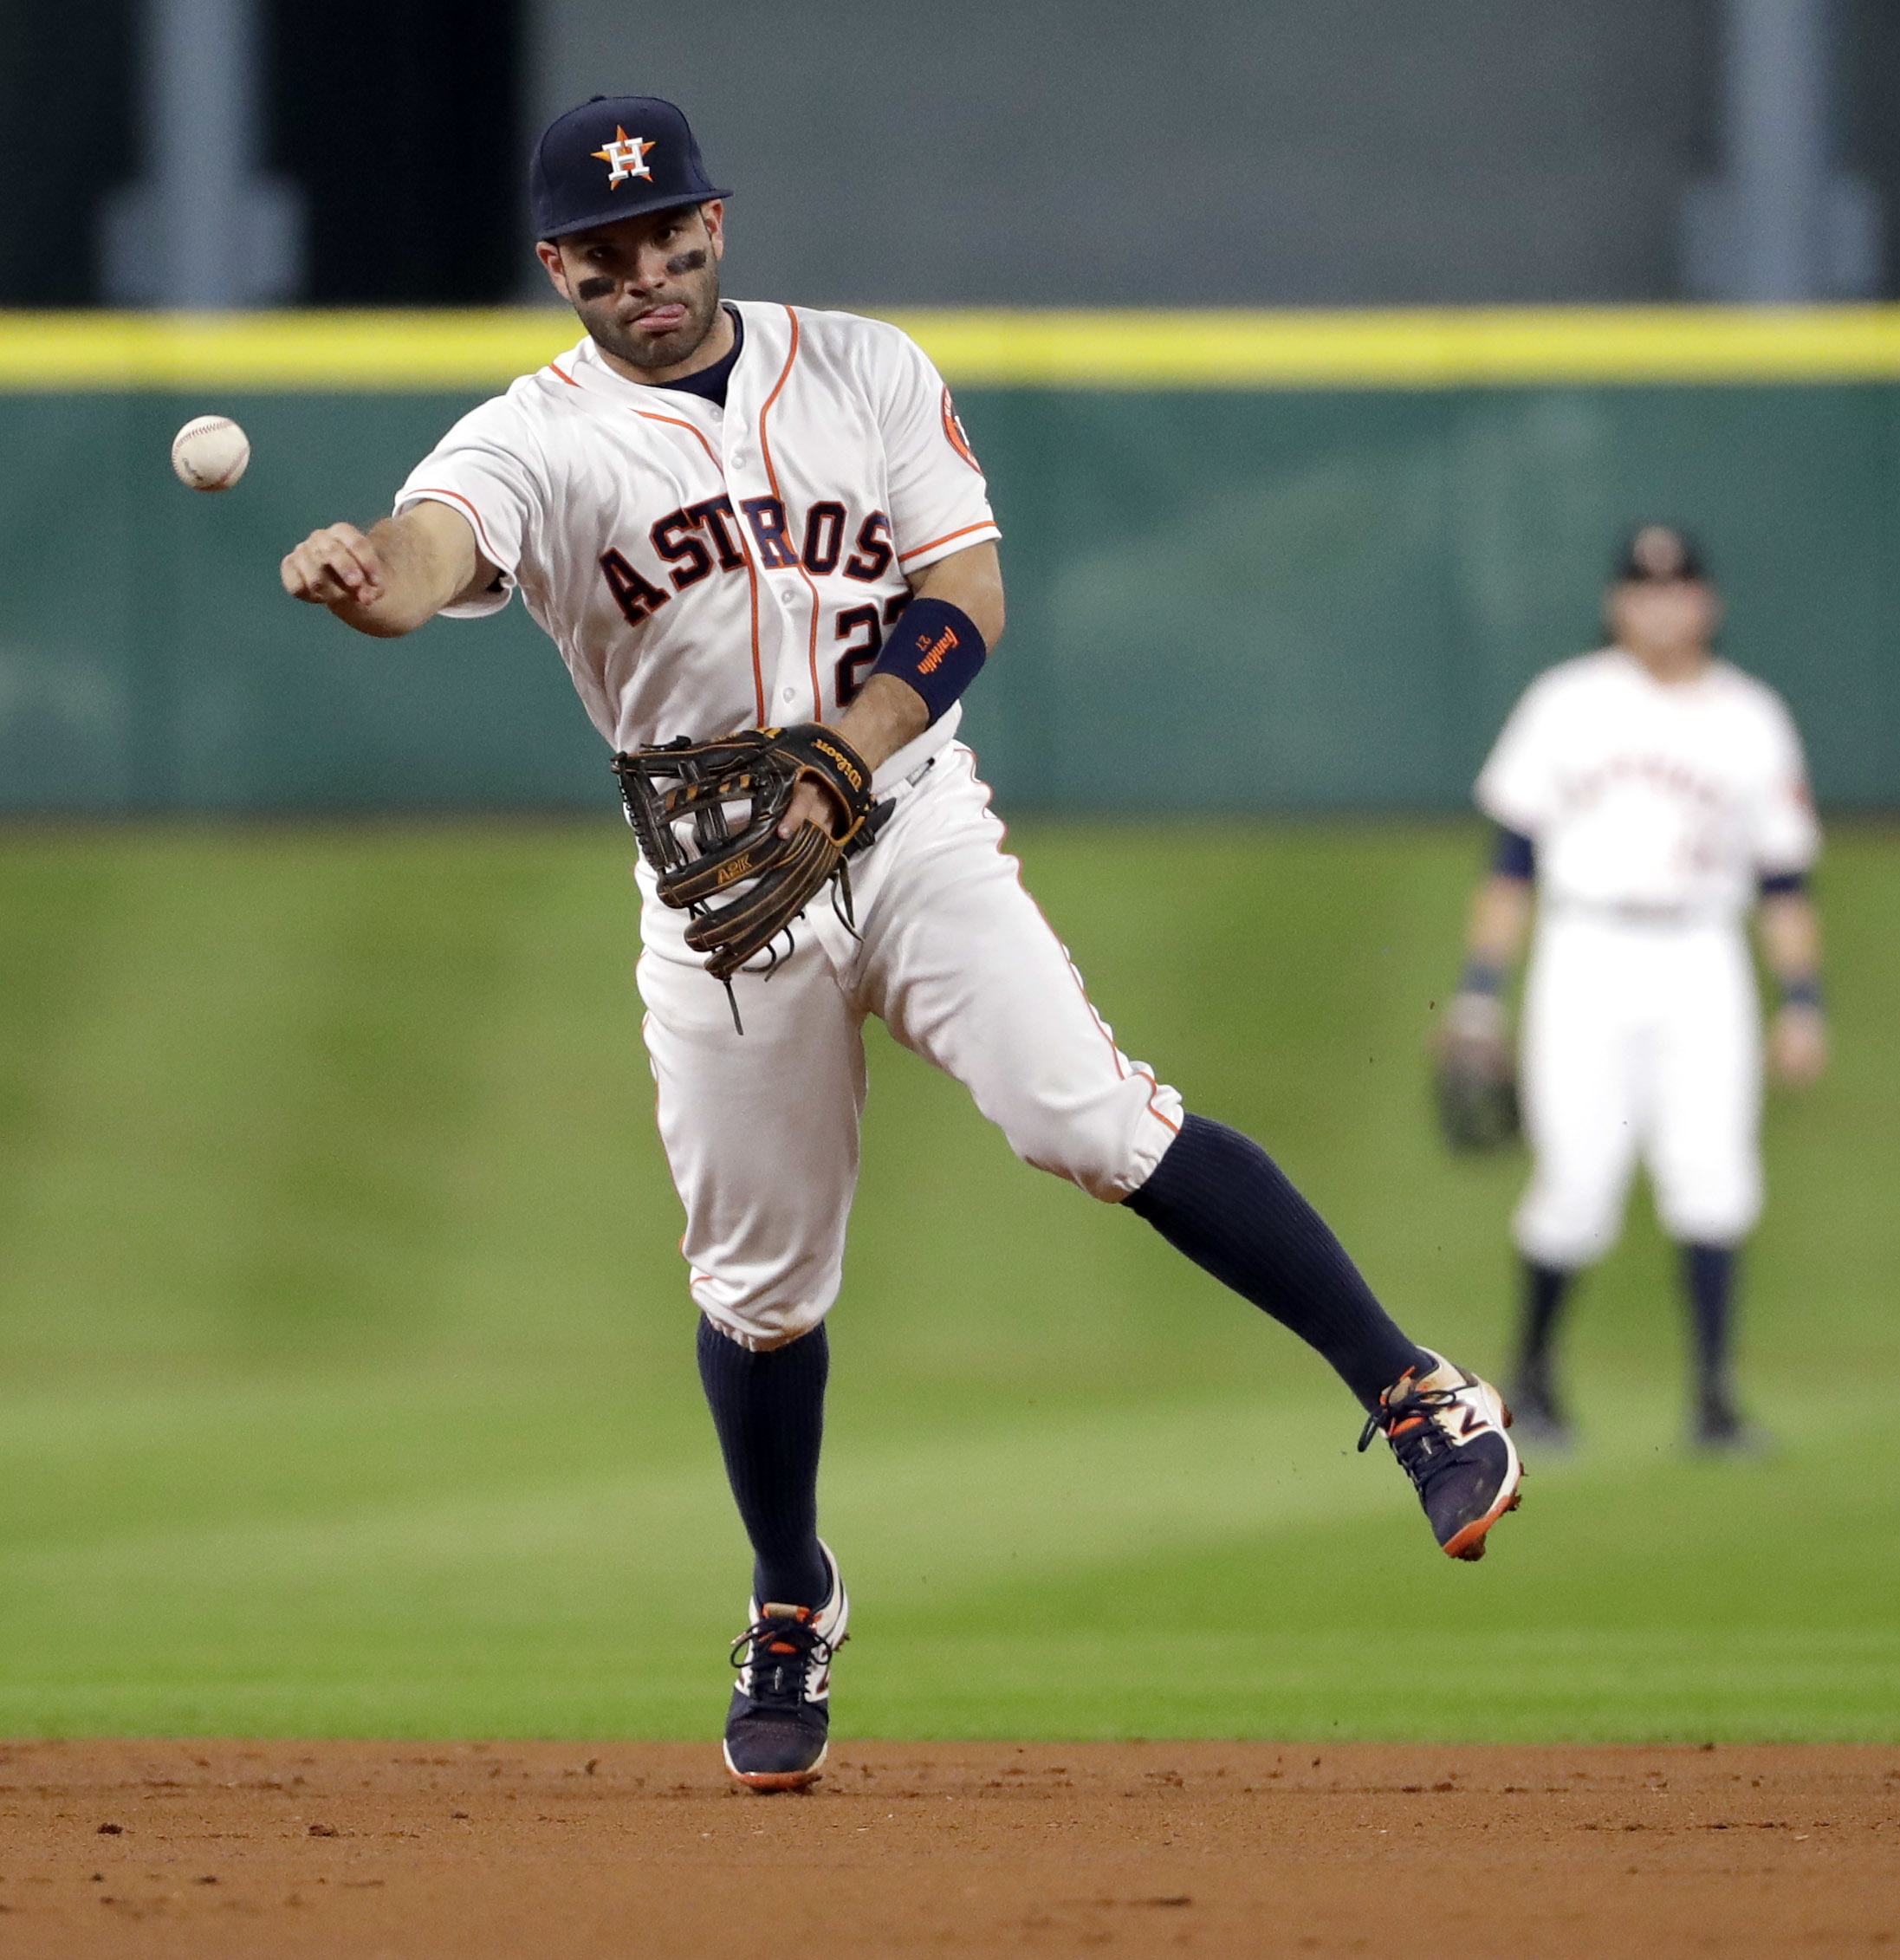 Houston Astros second baseman Jose Altuve throws to first for the out after fielding a grounder by Texas Rangers' Robinson Chirinos during the third inning of a baseball game Tuesday, Sept. 13, 2016, in Houston. (AP Photo/David J. Phillip)